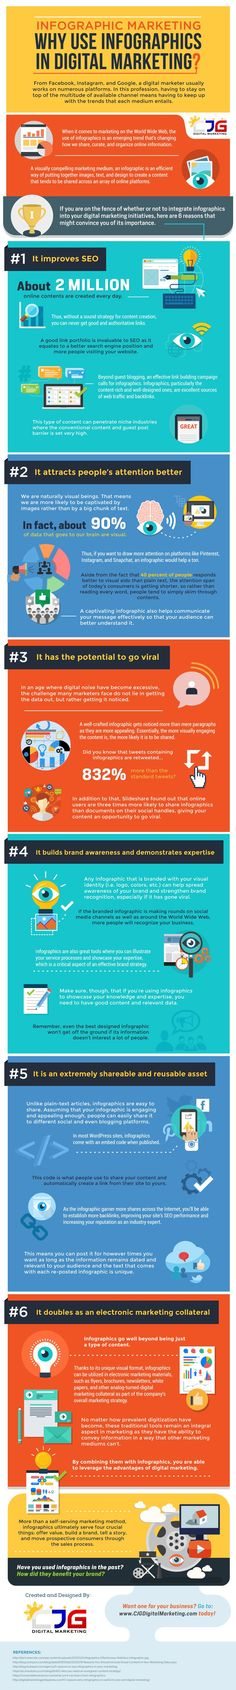 Infographic Marketing – Why Use Infographics in Digital Marketing? (Infographic)